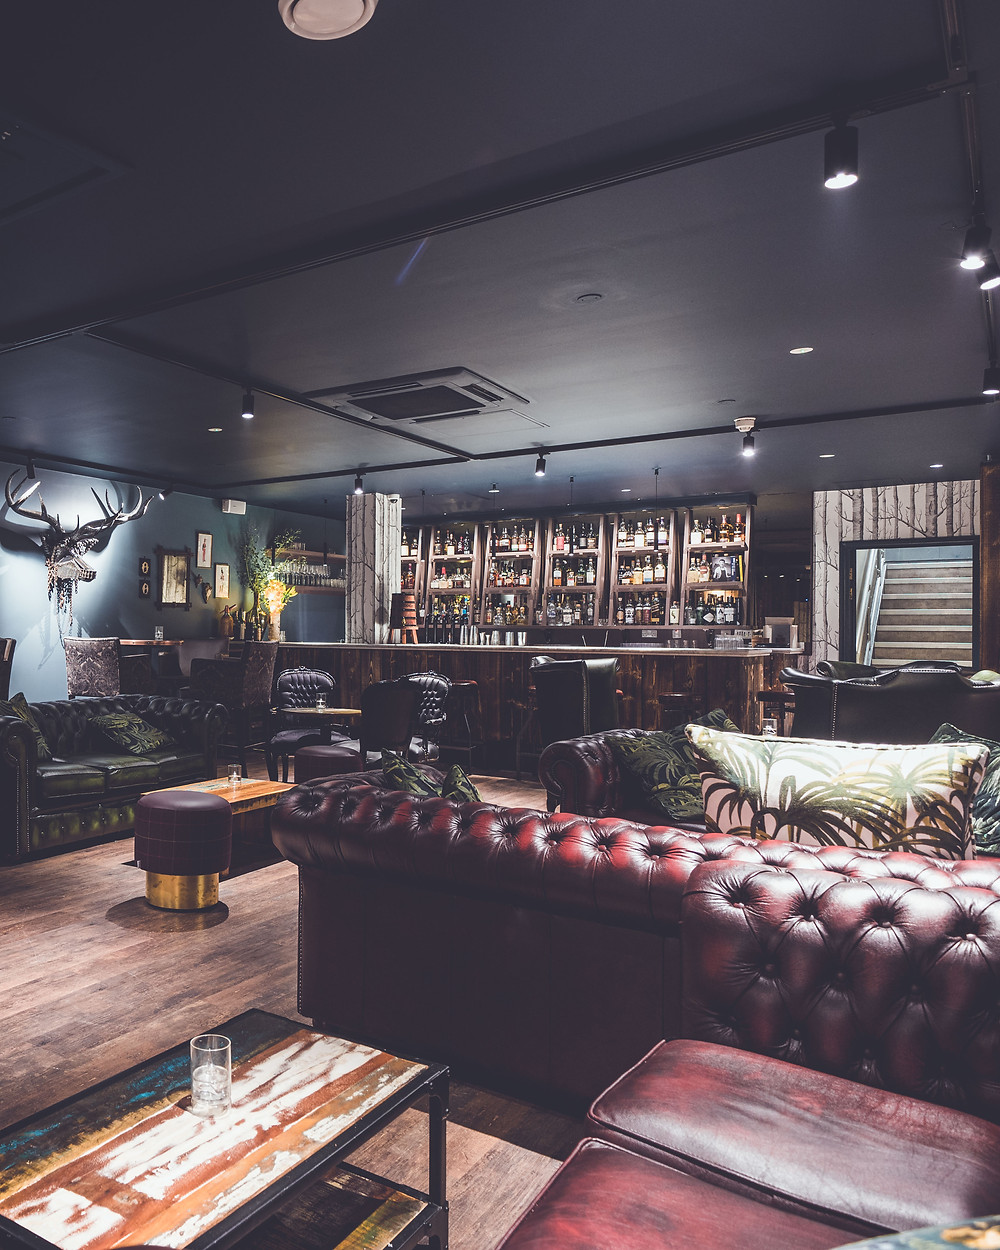 Iron Stag Hoxton to relaunch as entertainment venue